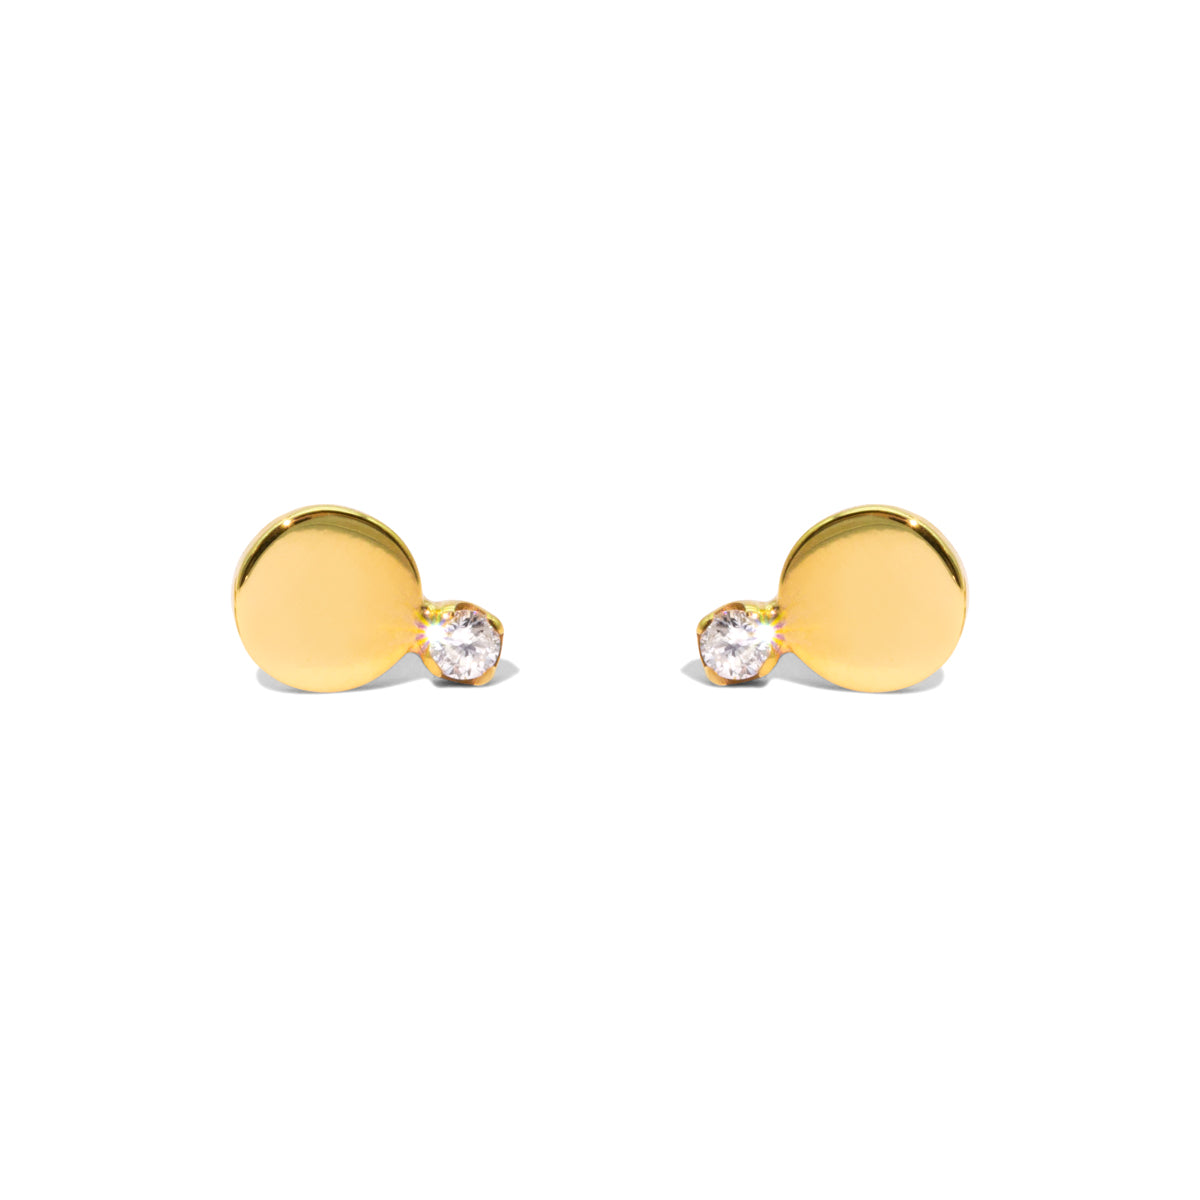 The Gold Diamond Horizon Stud Earrings